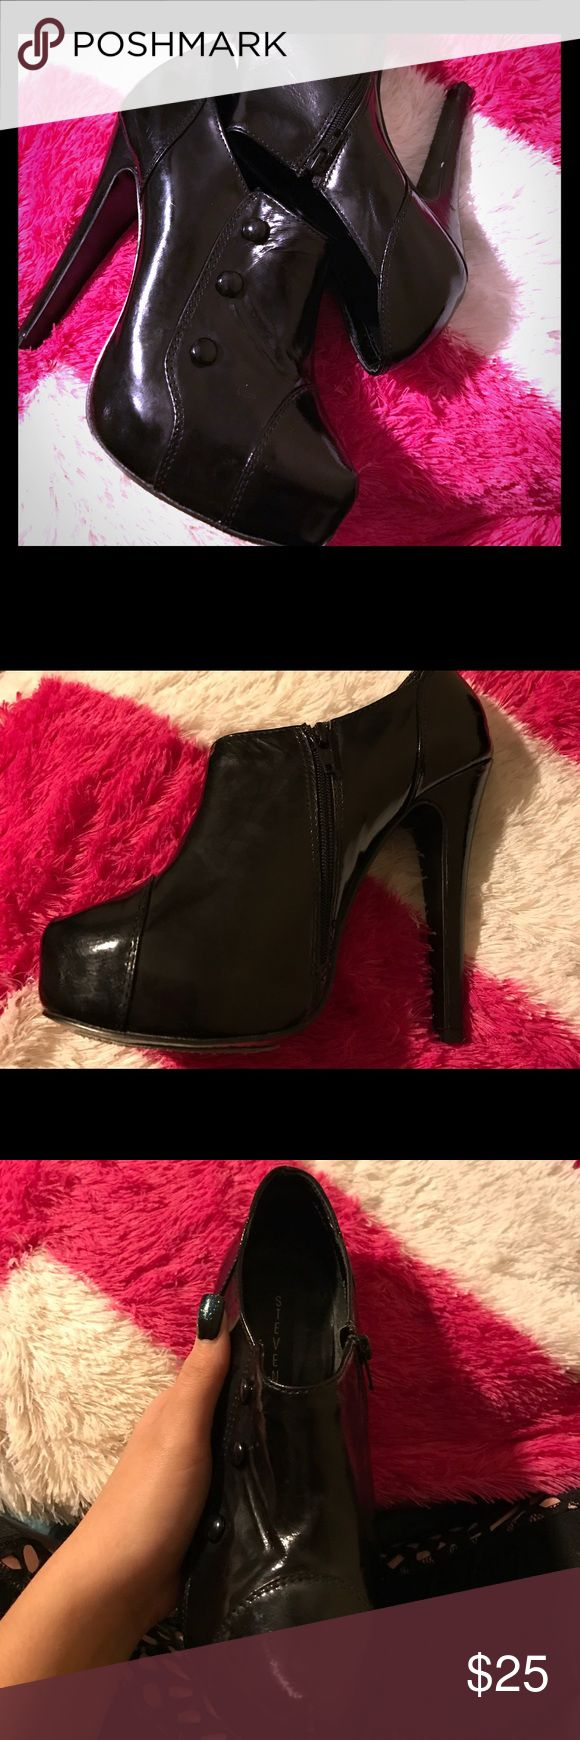 Black stiletto heels Shiny black, buttons shown on side of foot visible to people for decoration, a zipper on the inside, stiletto heel which is 5 inches. Brand new never worn. Steve Madden Shoes Heels